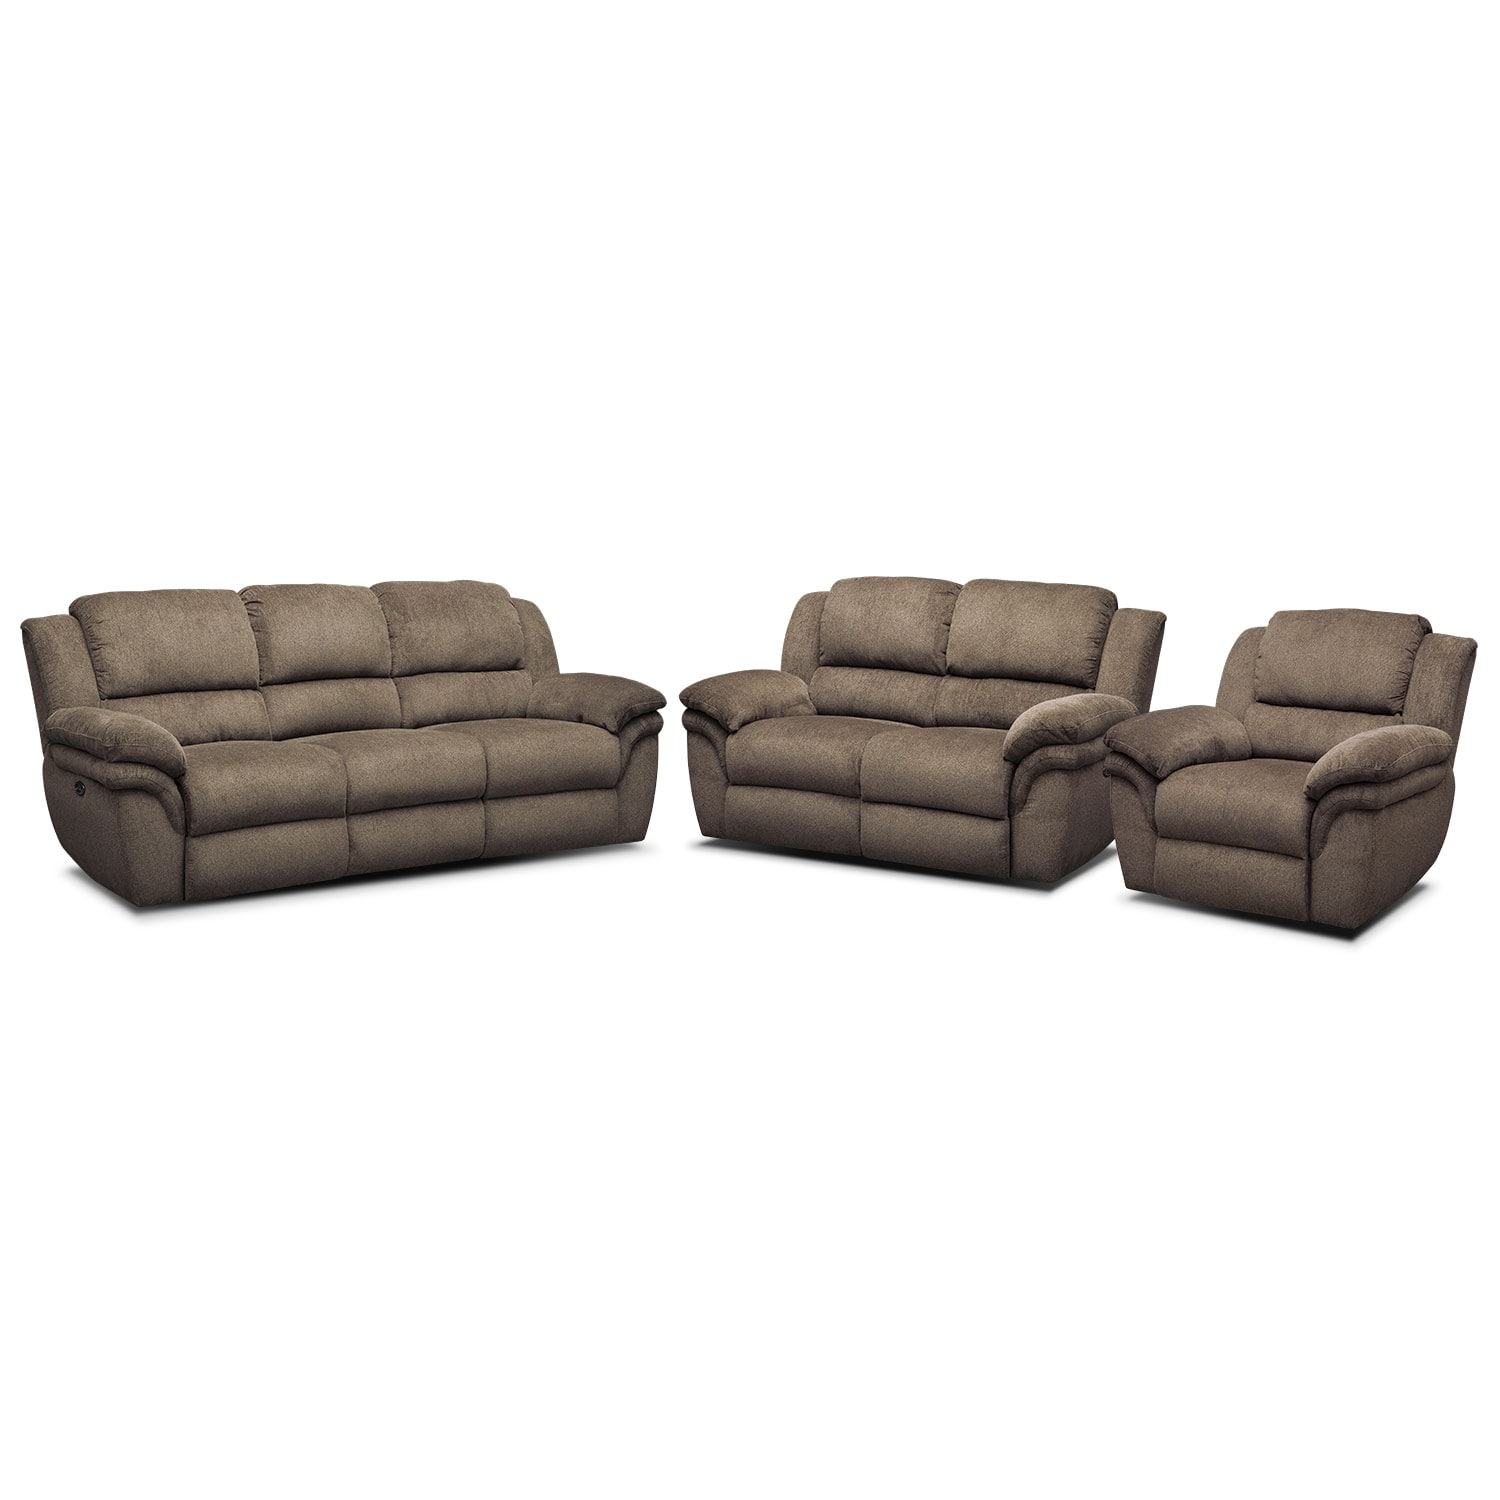 Aldo Reclining Sofa Loveseat And Recliner Set